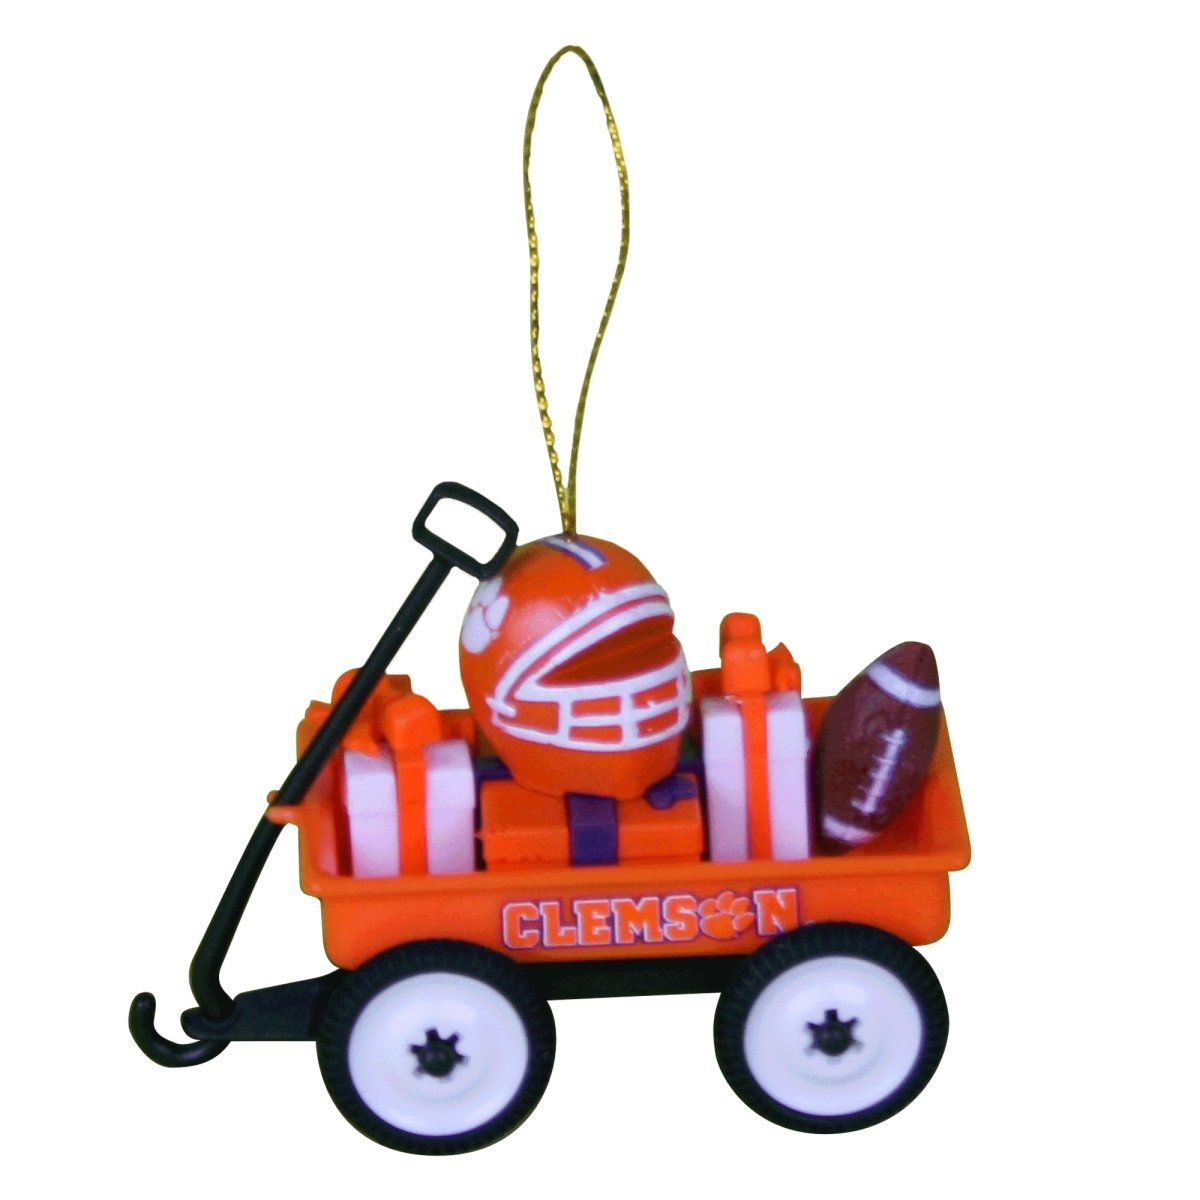 Team Wagon Ornament - Mr. Knickerbocker